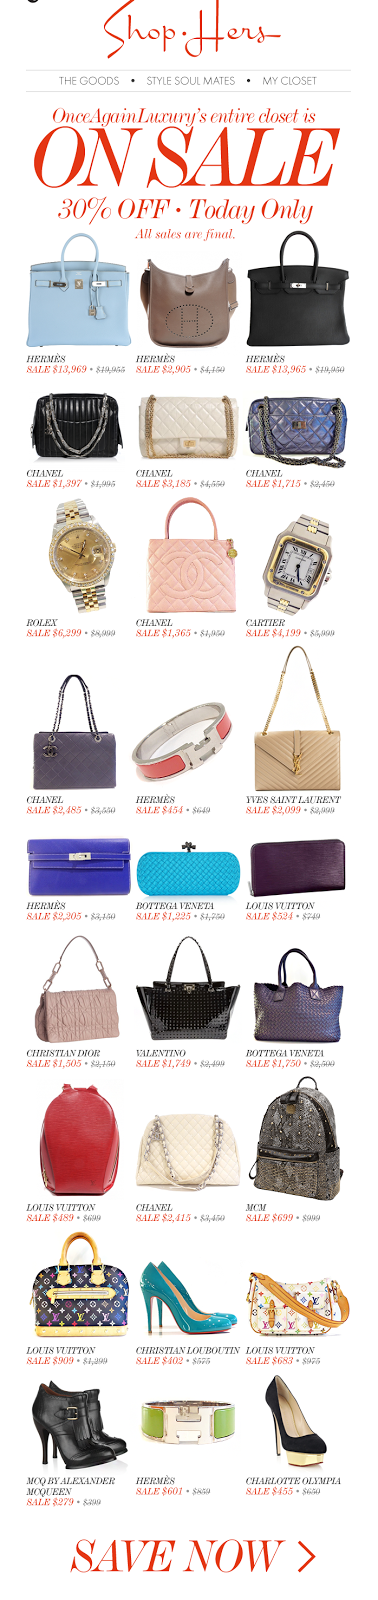 b3293a207df Vancouver Luxury Designer Consignment Shop: Consign your Hermes ...